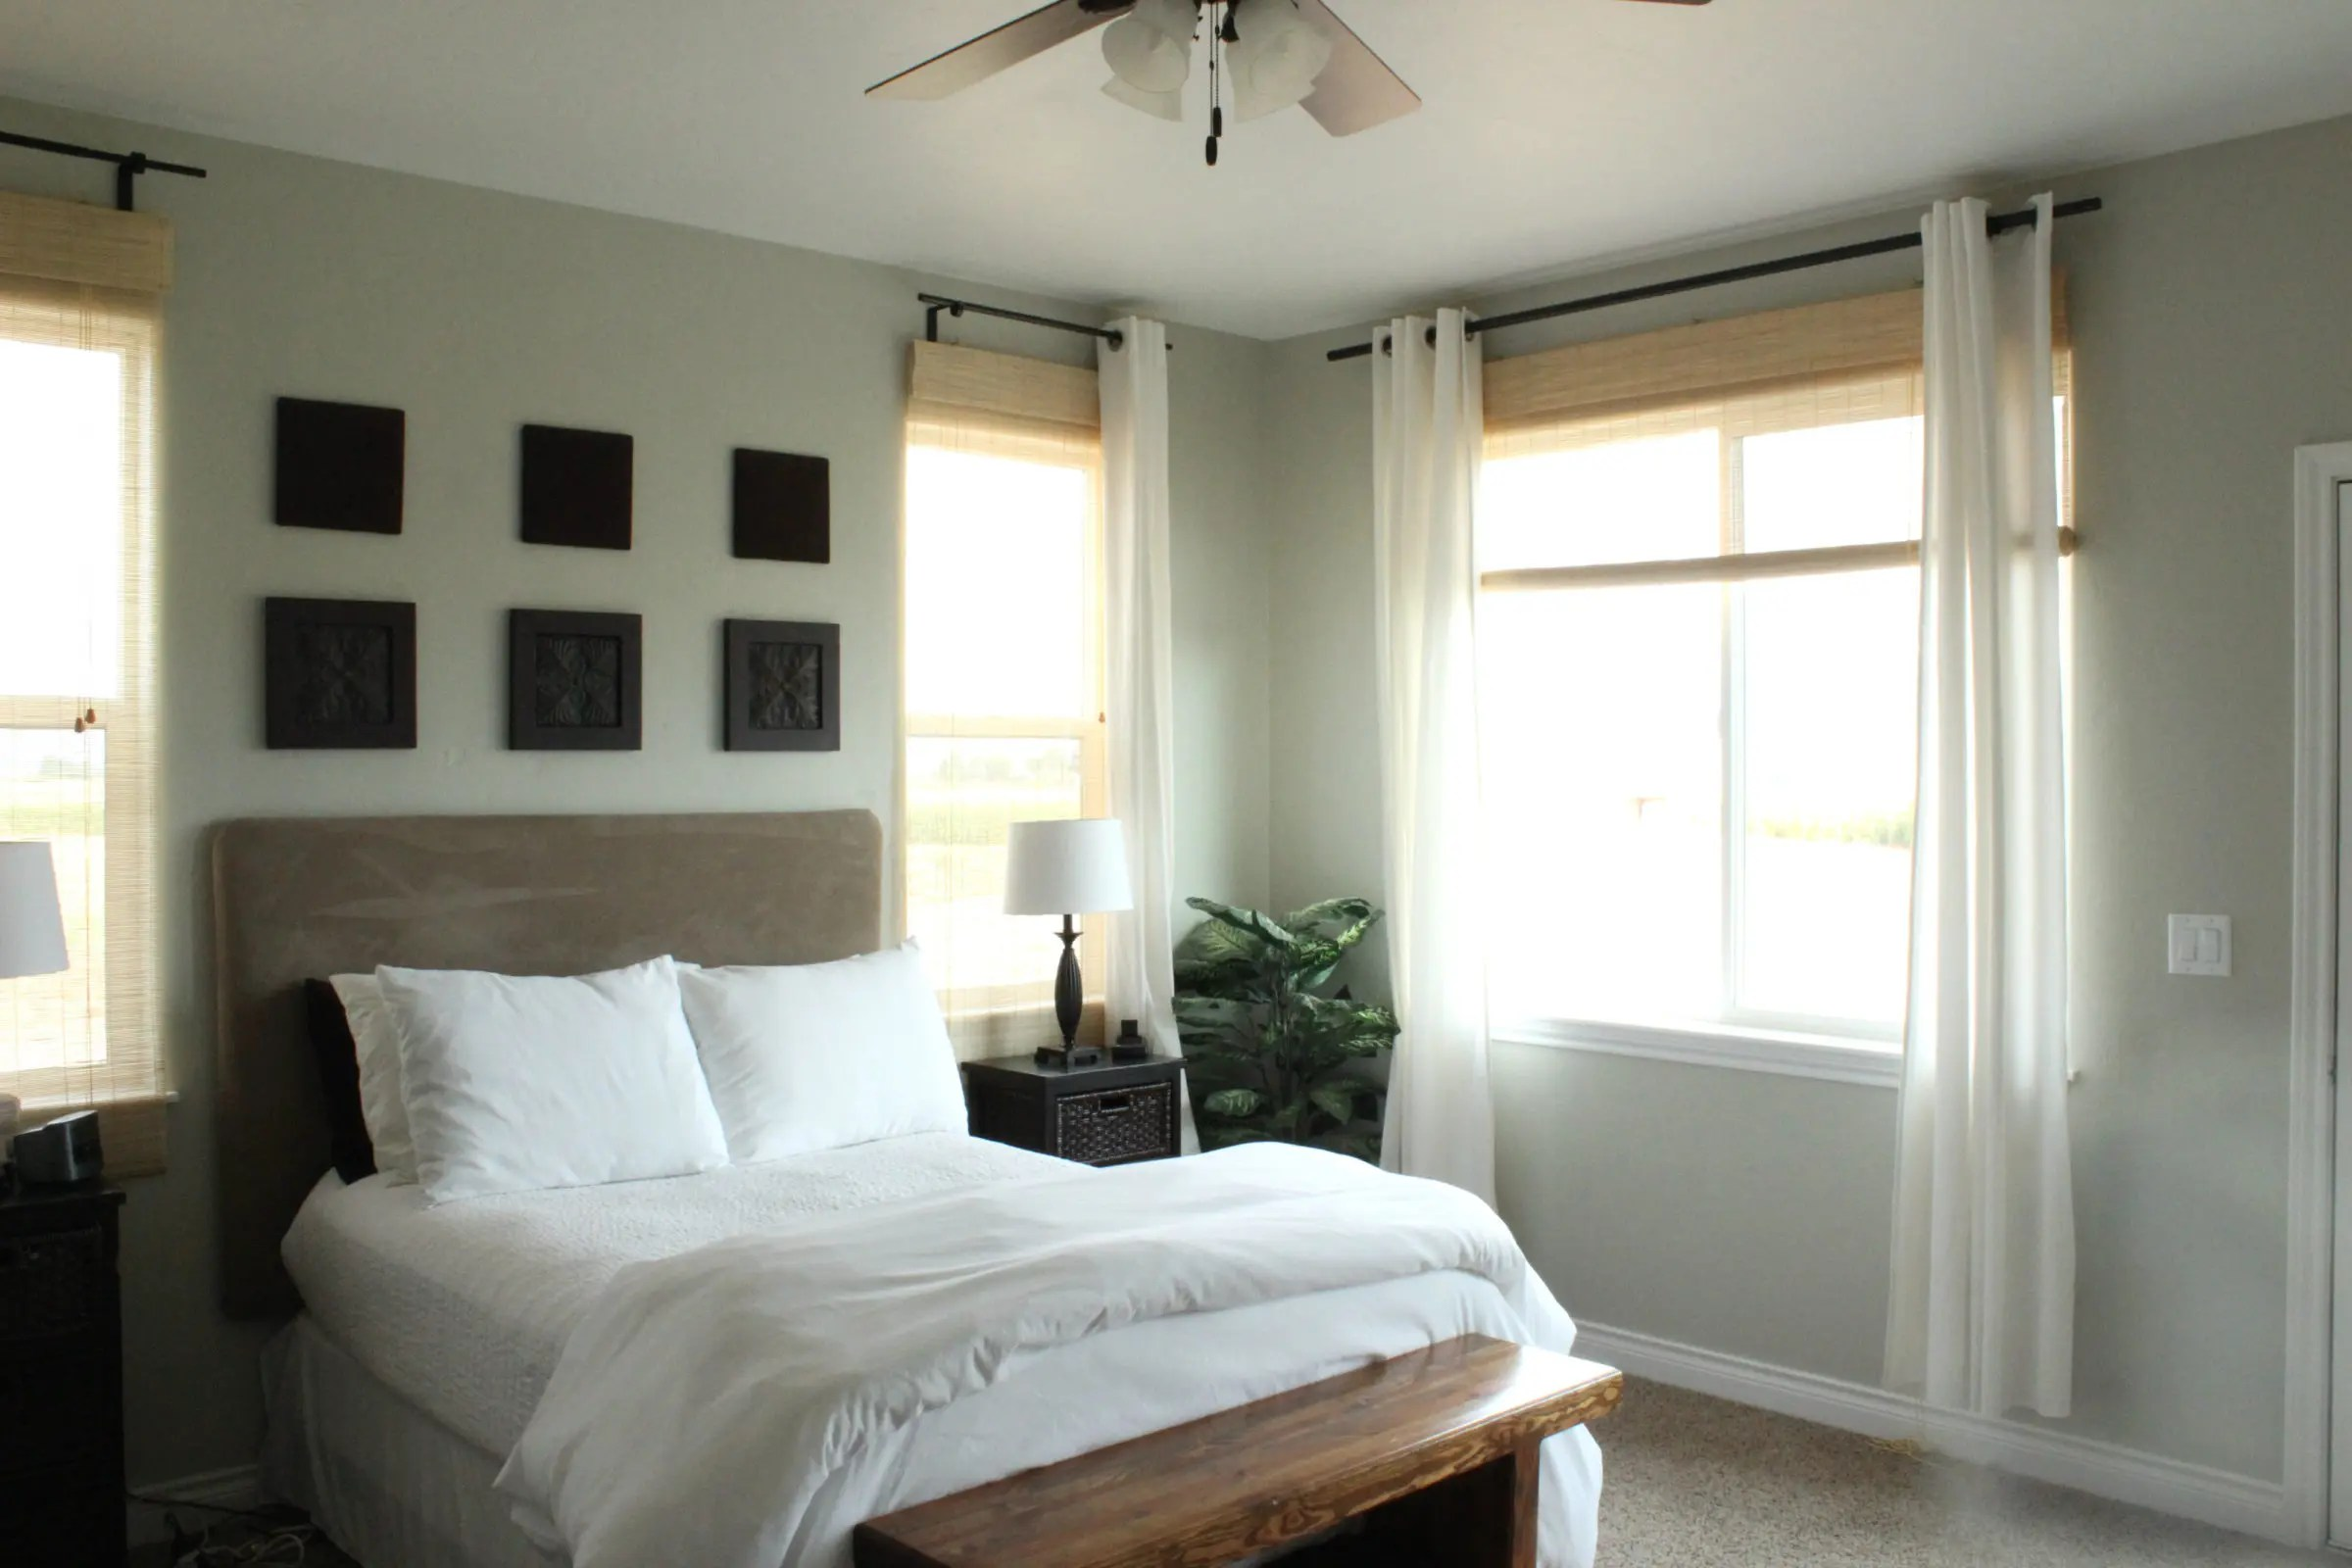 Master Bedroom Curtains - The Wood Grain Cottage on Master Bedroom Curtain Ideas  id=91249